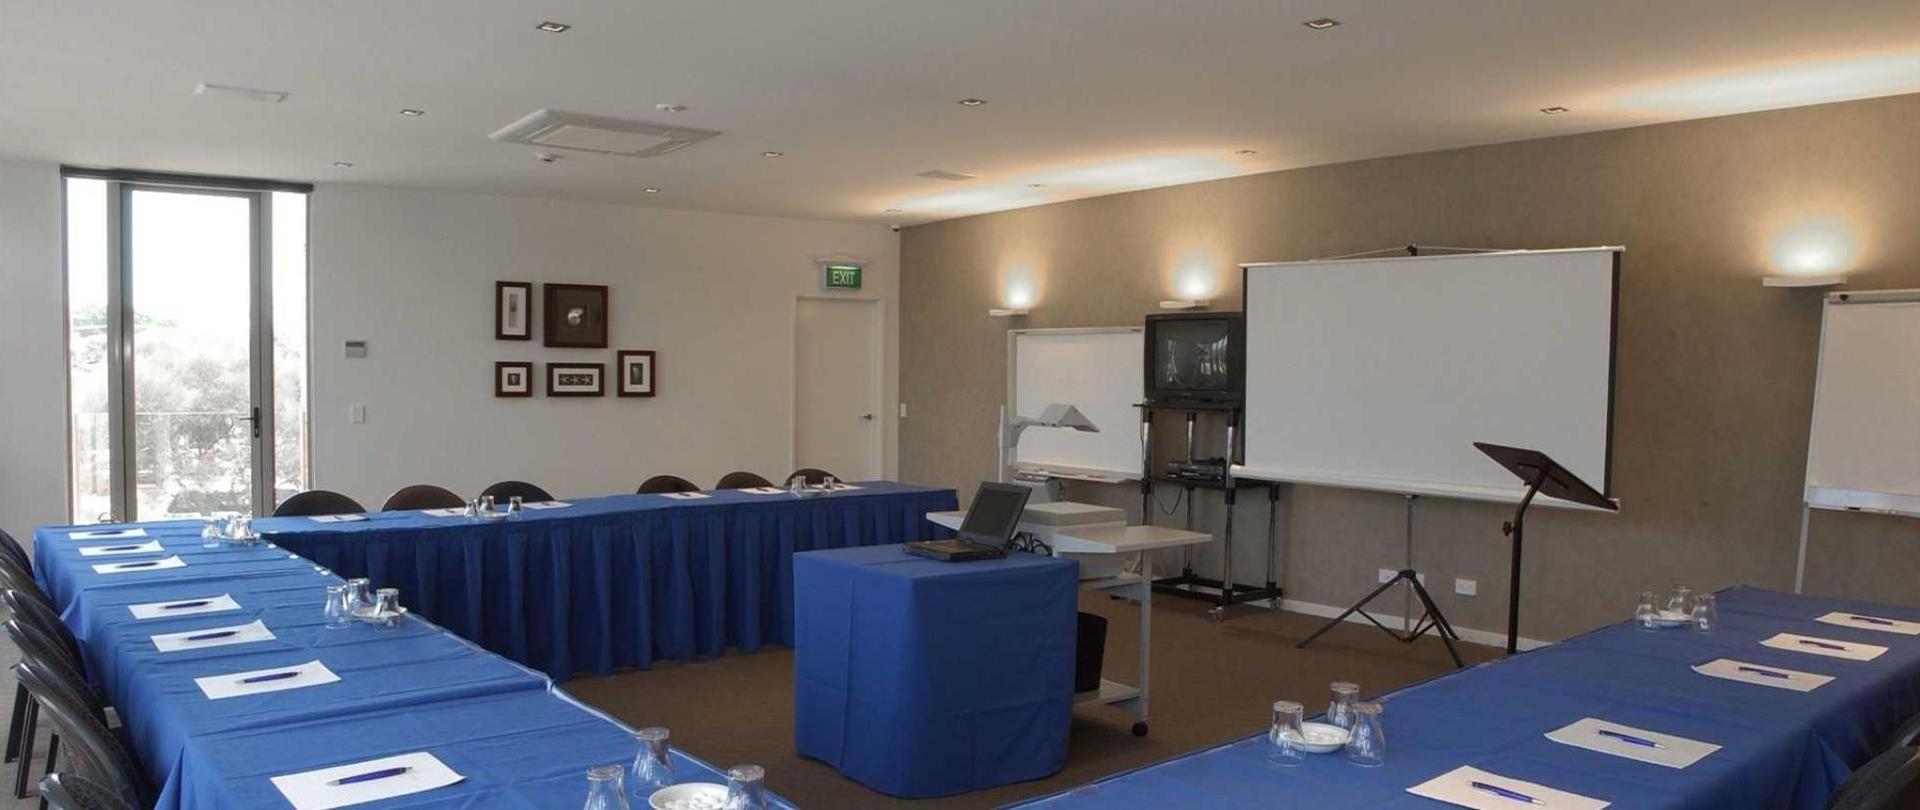 Modern conference facilities available for meetings and conferences.jpg